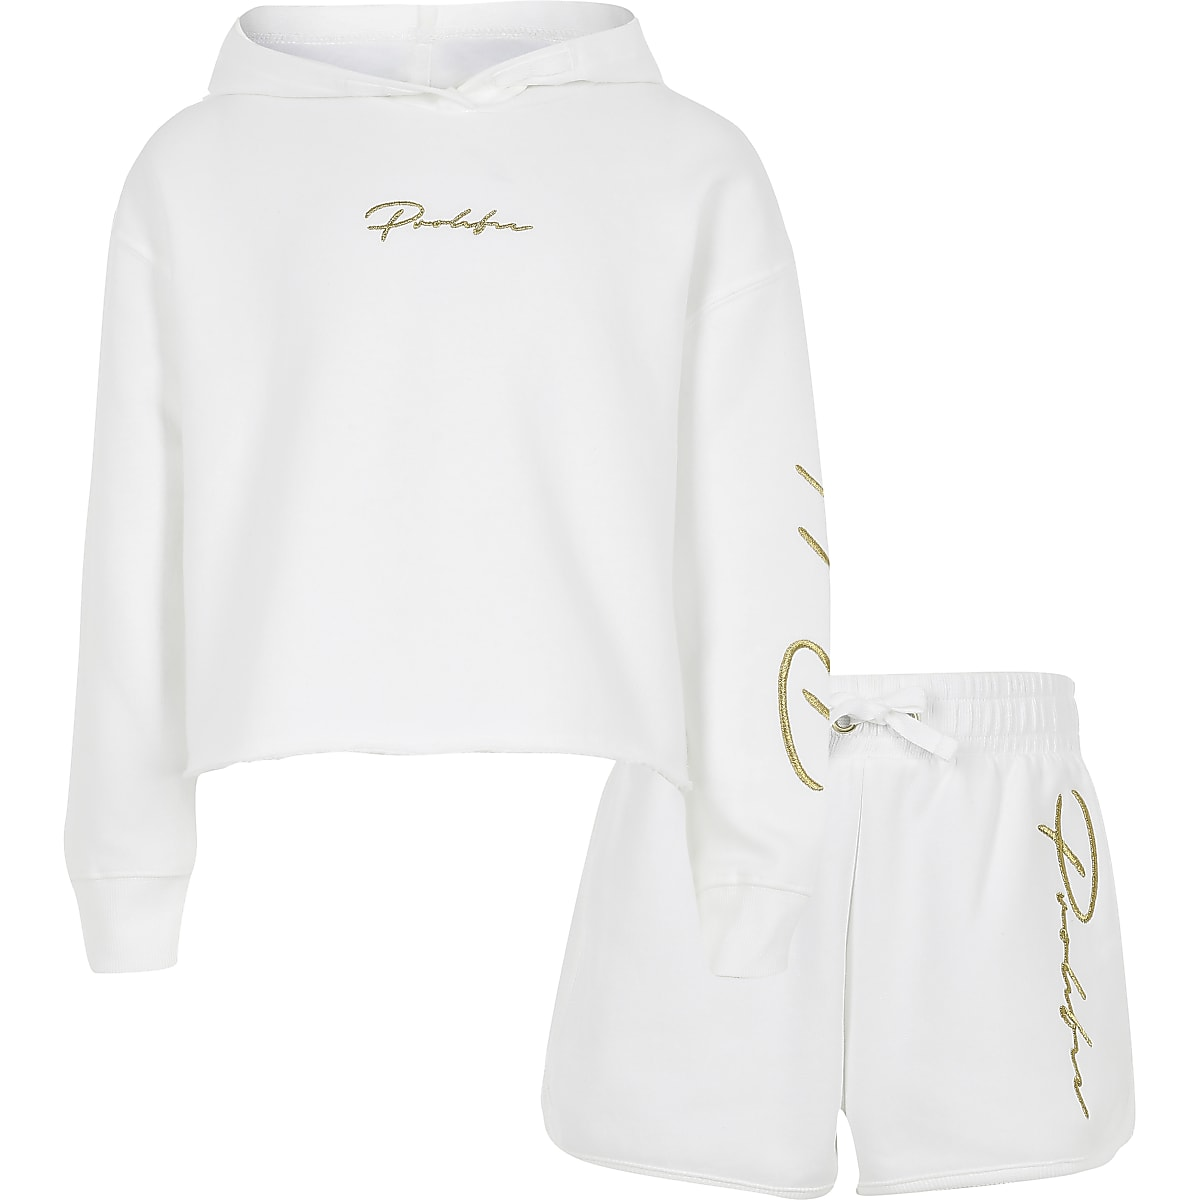 Girls white 'Prolific' hoodie outfit